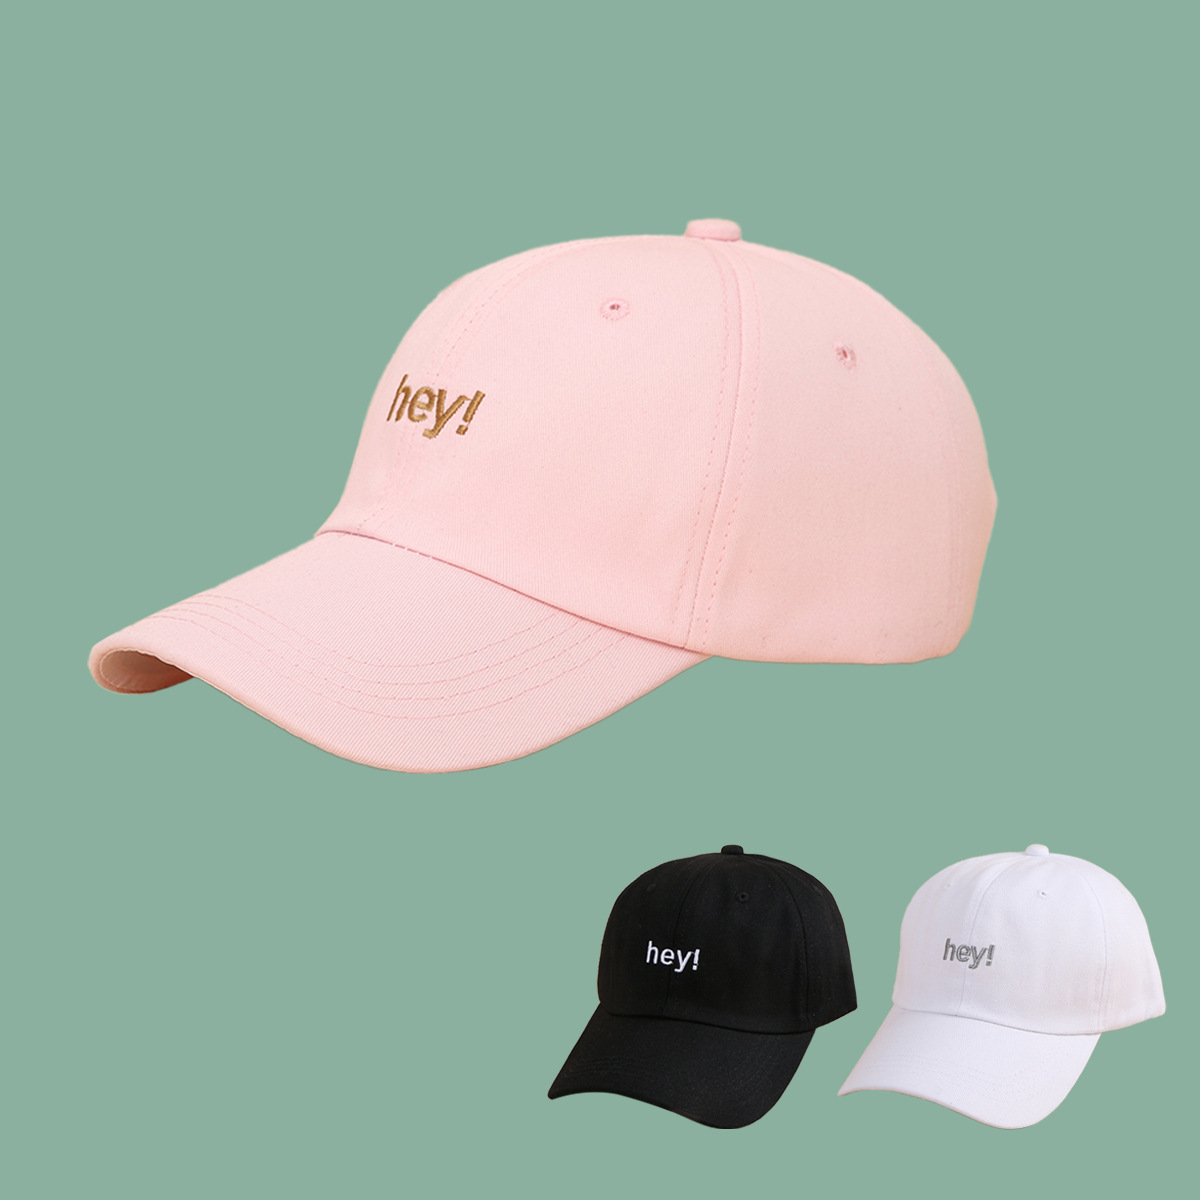 fashion simple casual sunshade baseball cap  NSTQ54339